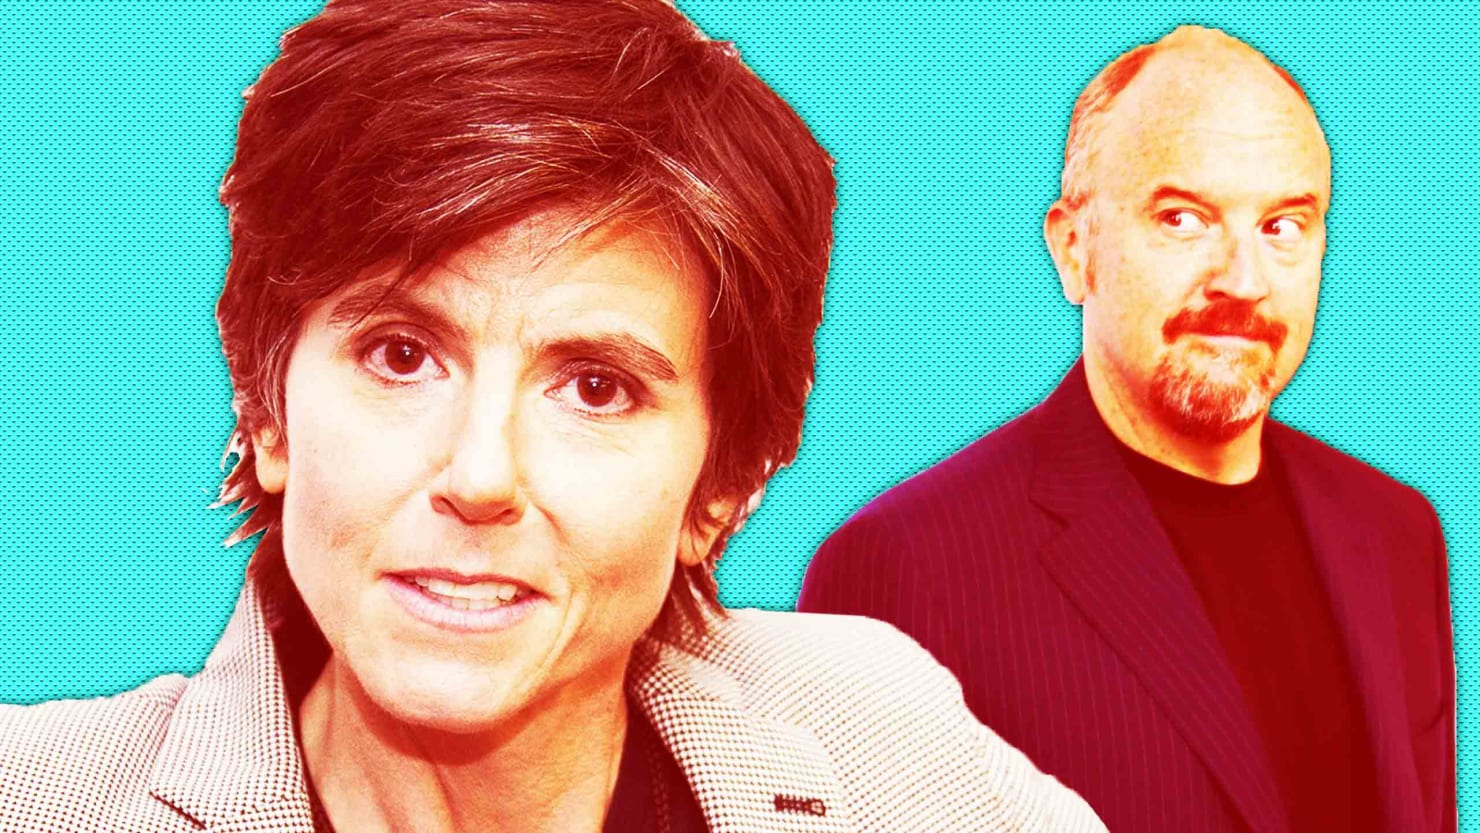 Tig Notaro: Louis CK has to Handle Sexual Misconduct Rumors